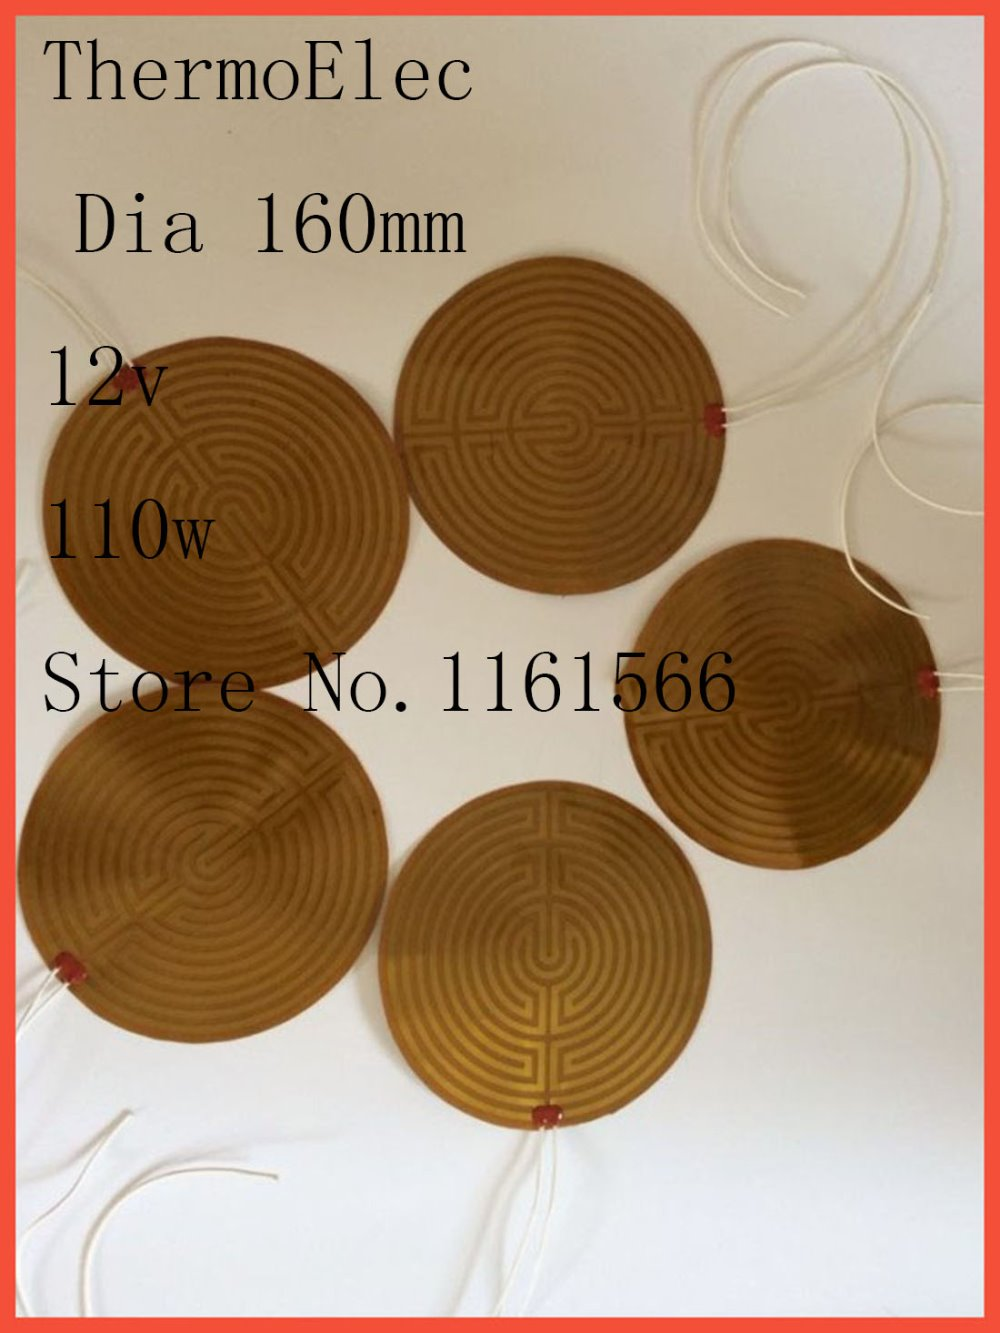 Dia 160mm 12v 110w element heating PI film polyimide heater heat rubber electric flexible heated bad 3D printing oil pan heating dia 400mm 900w 120v 3m ntc 100k round tank silicone heater huge 3d printer build plate heated bed electric heating plate element